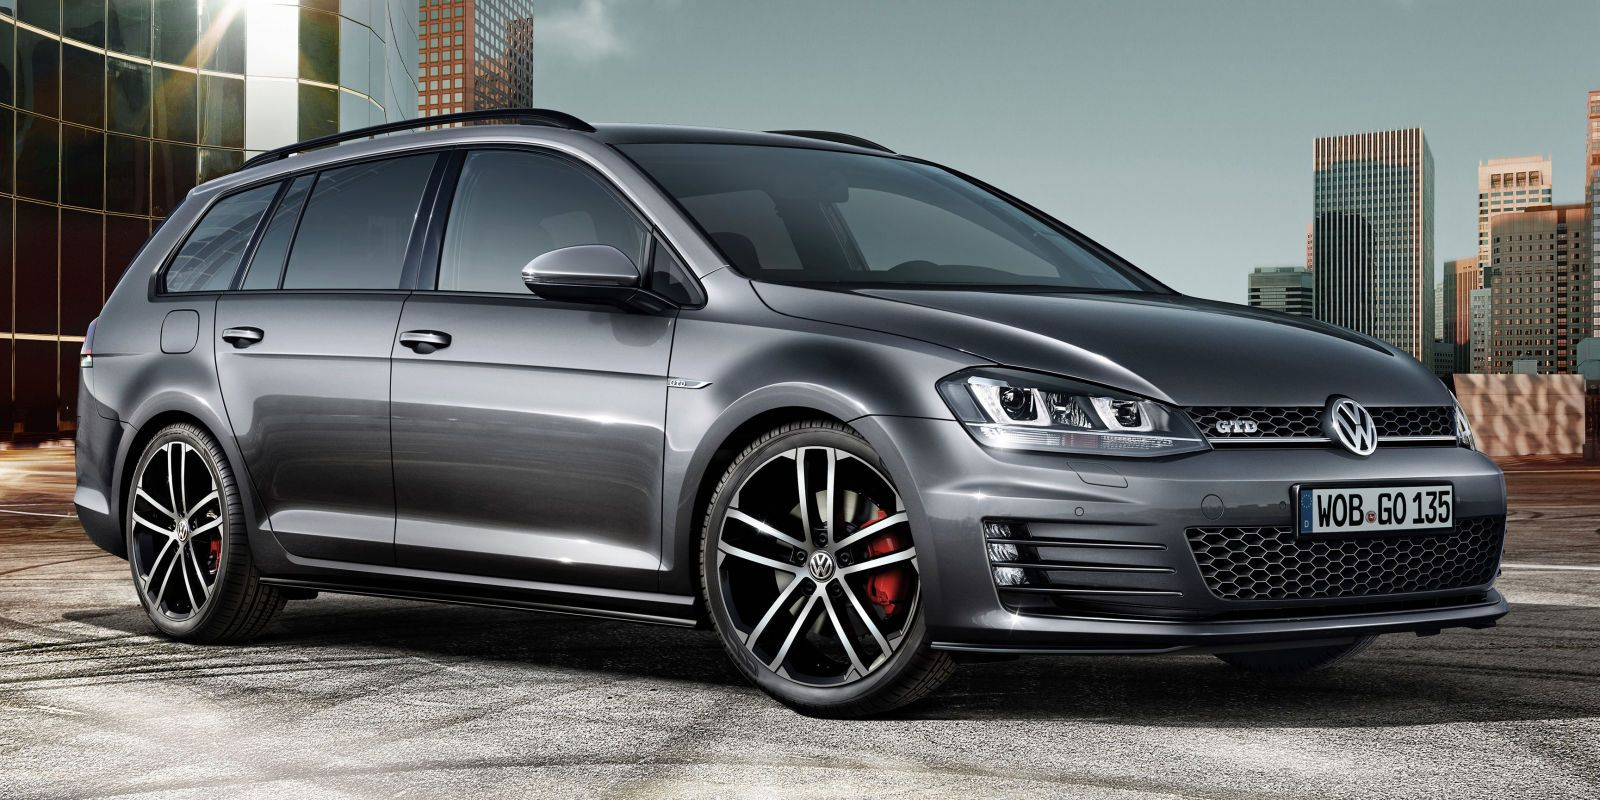 This Is The Vw Golf Gtd Wagon For Our European Friends In 2020 Mașini